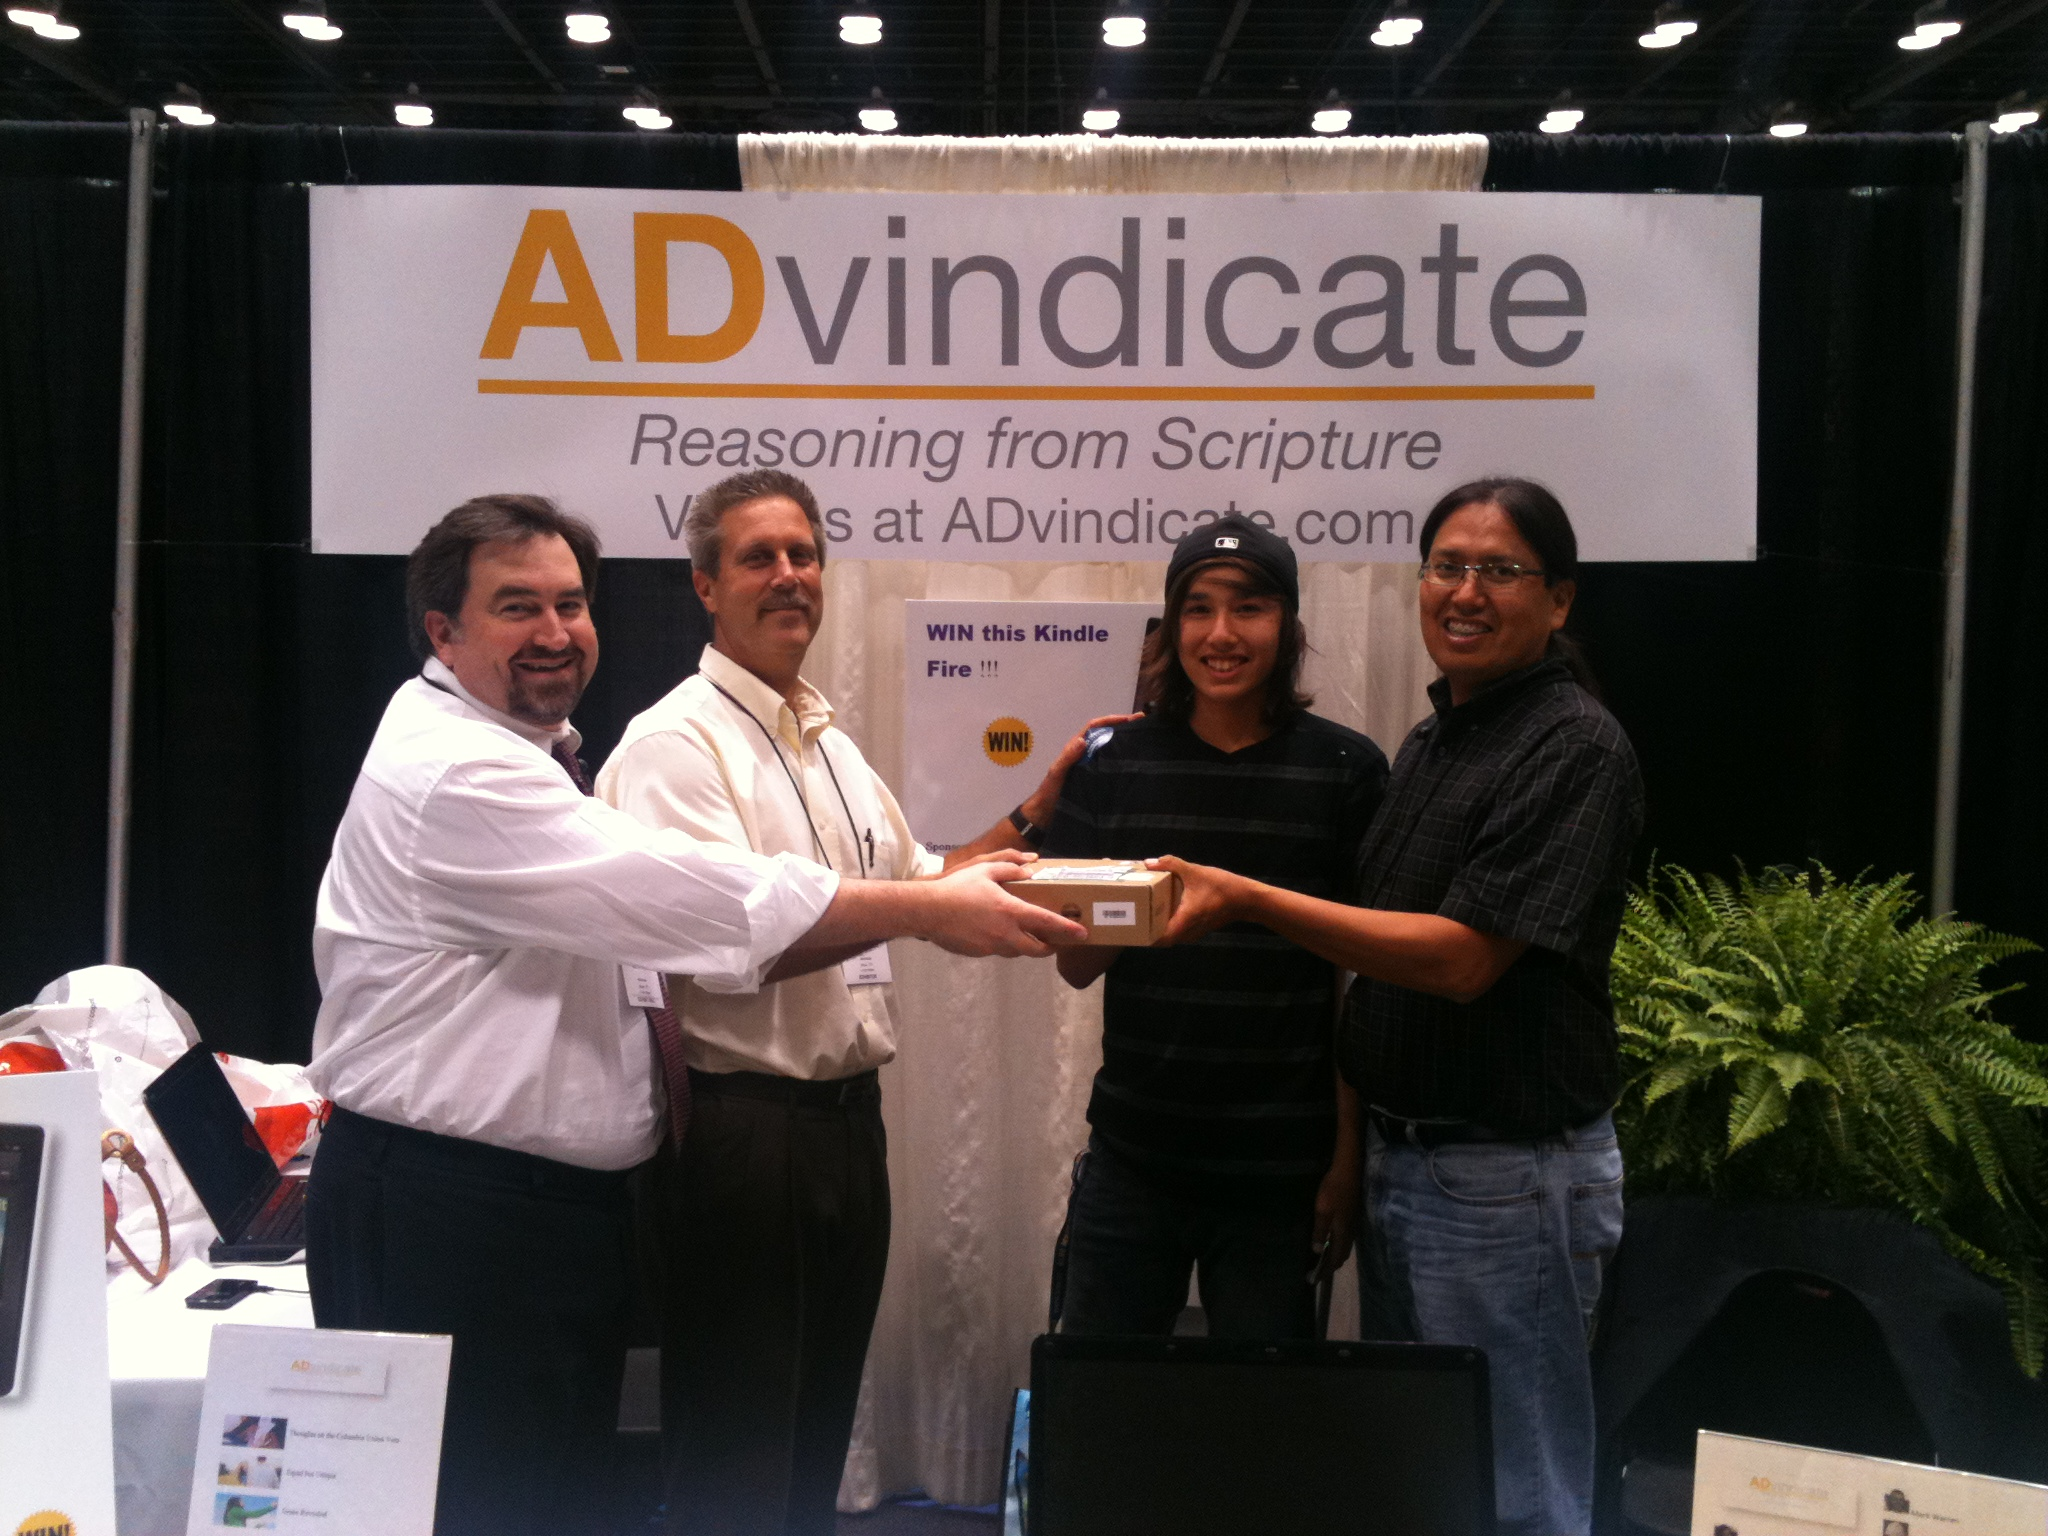 ASI Convention 2012 - Kindle Winner